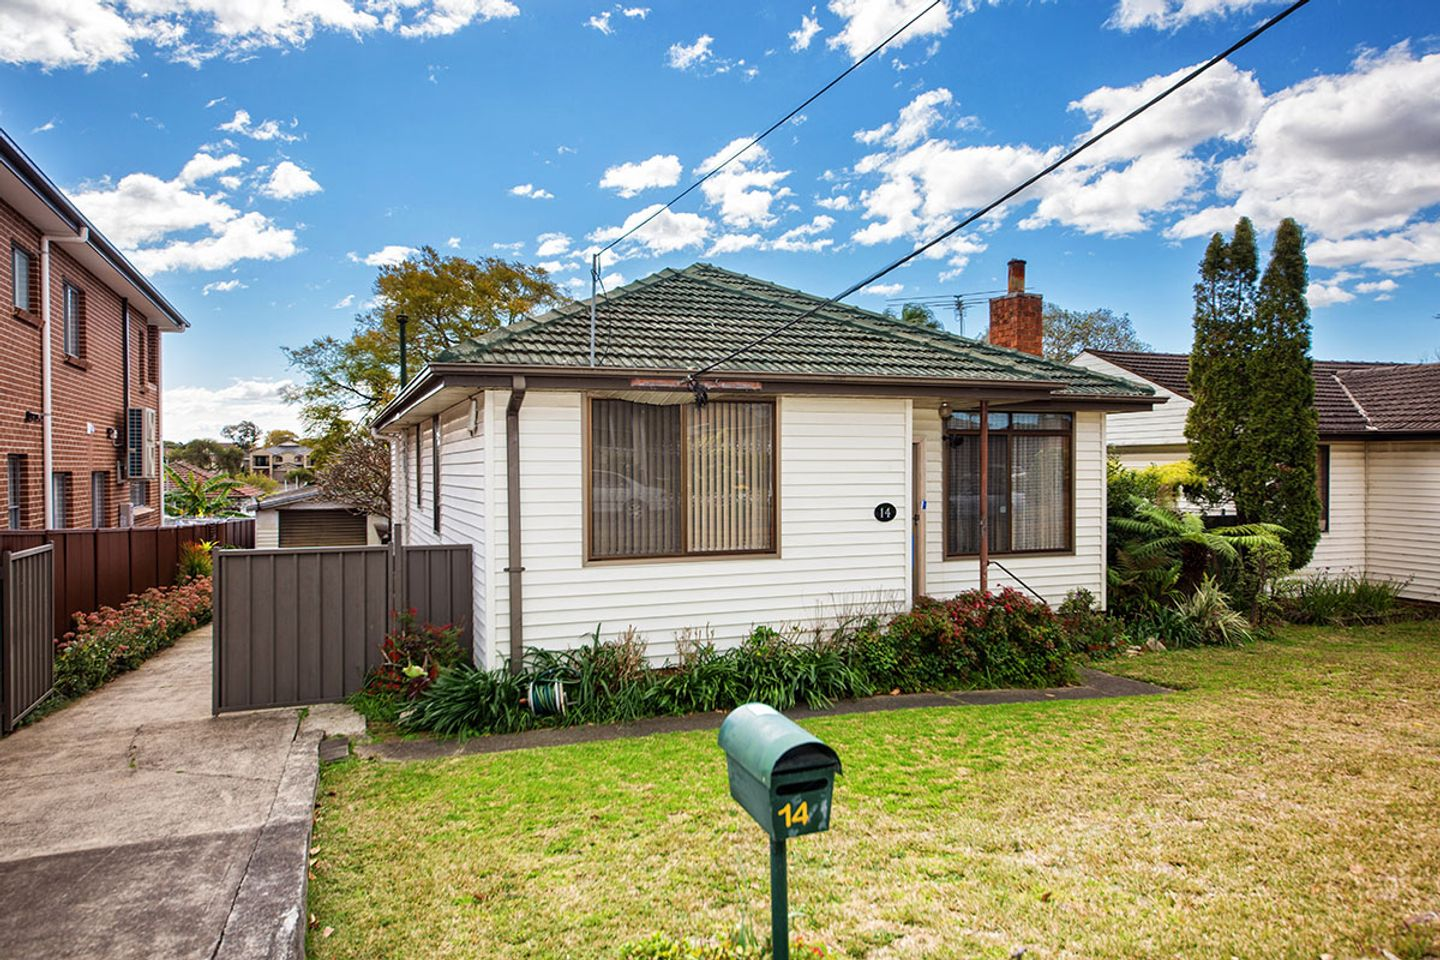 Buying Property In Nsw At Auction